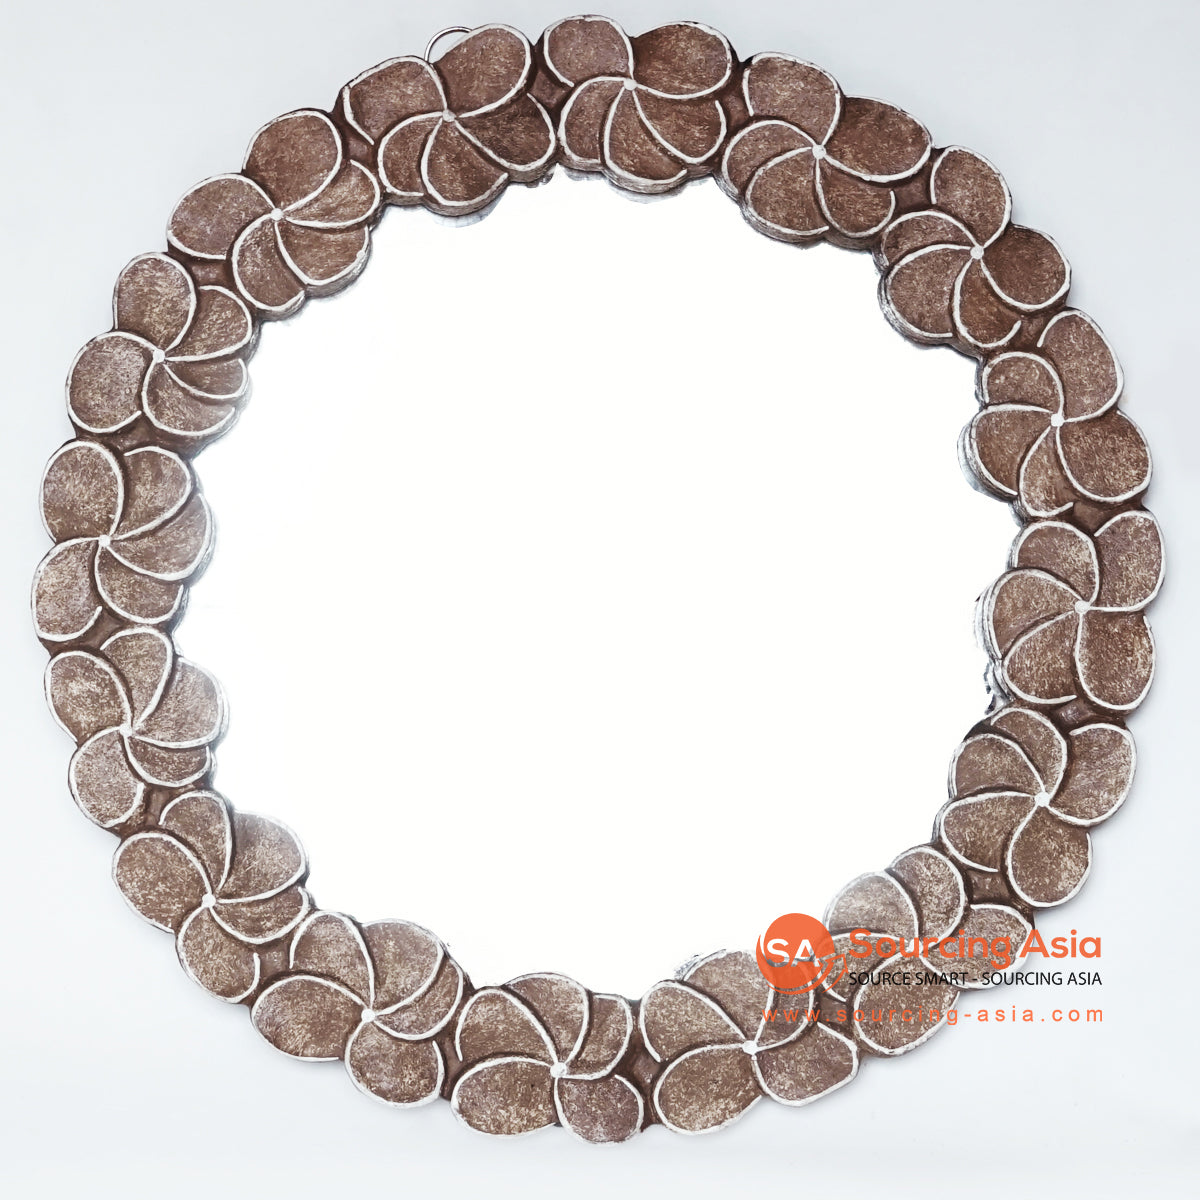 MANC047 ROUND MIRROR WITH FRANGIPANI CARVINGS